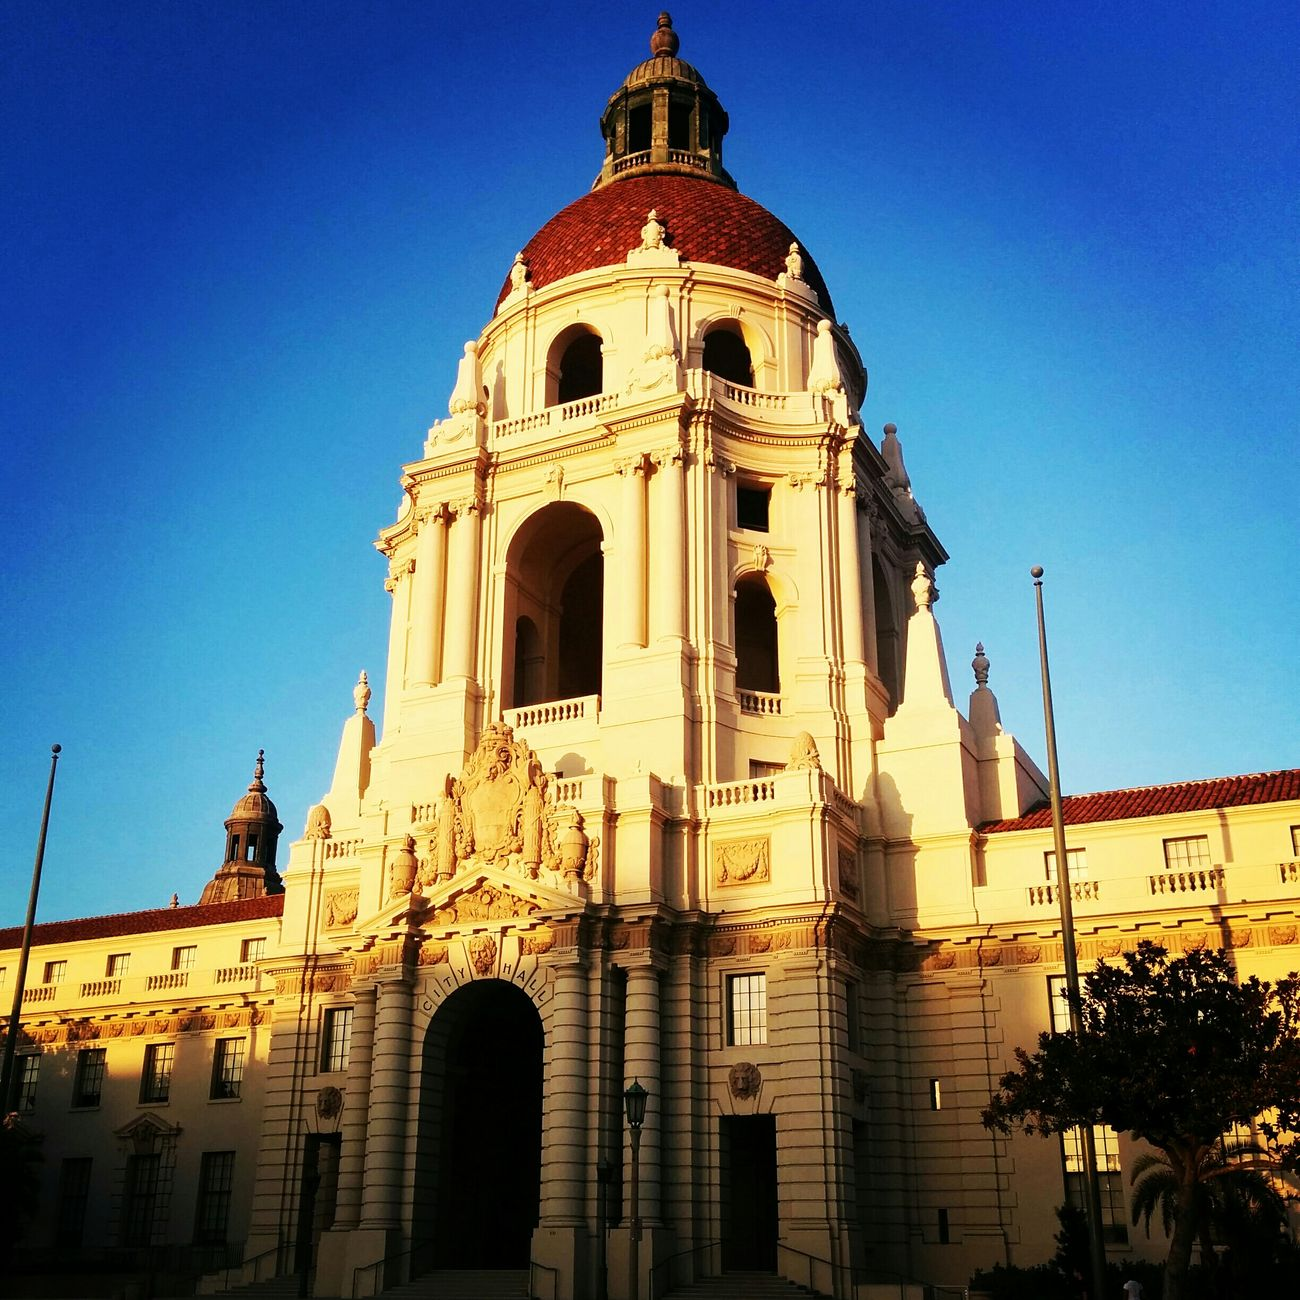 First Eyeem Photo Pasadena Cityhall Pasadena  Nexus5 Architecture Beauty Oldtownpasadena